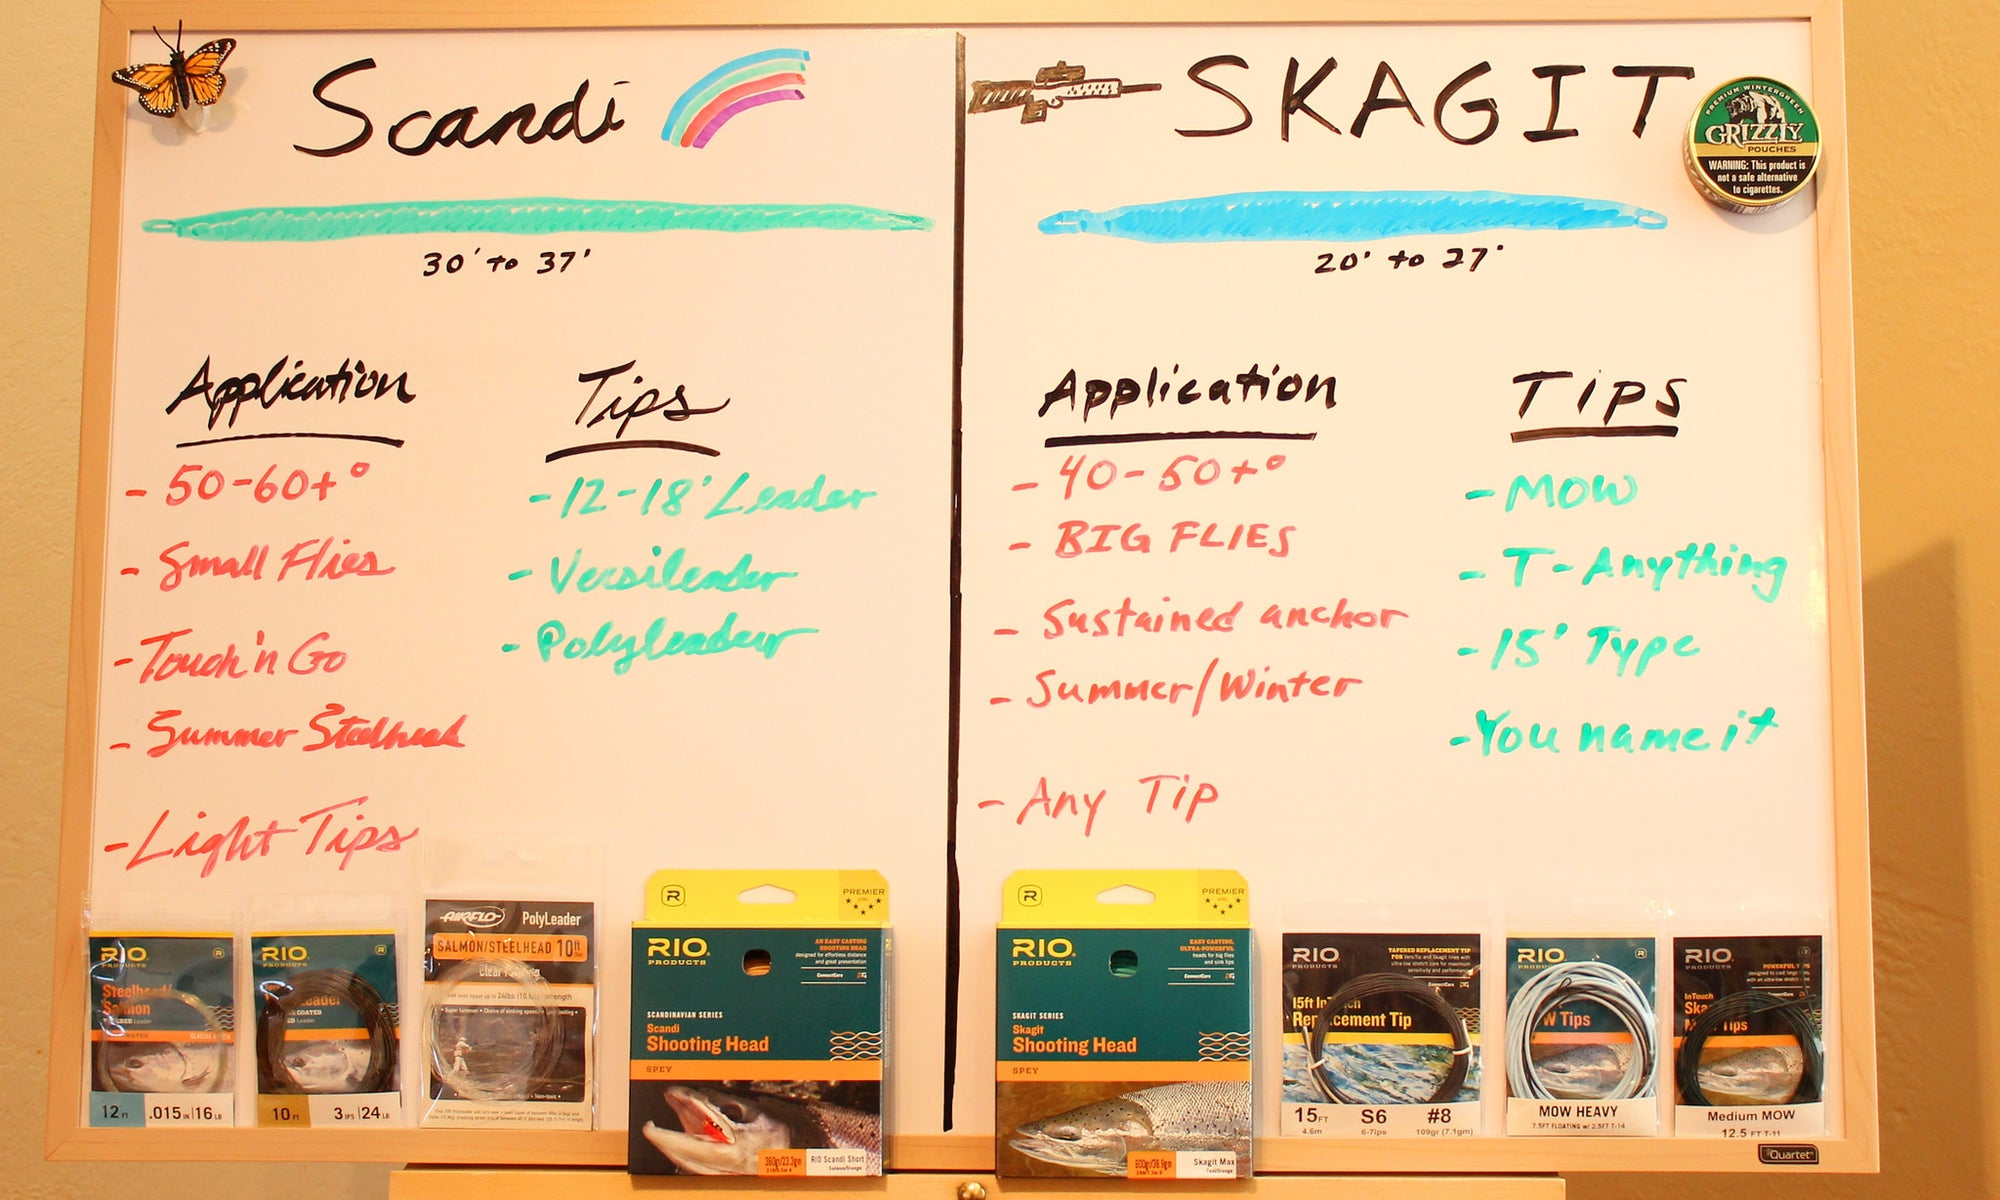 When to use Scandi and When to use Skagit